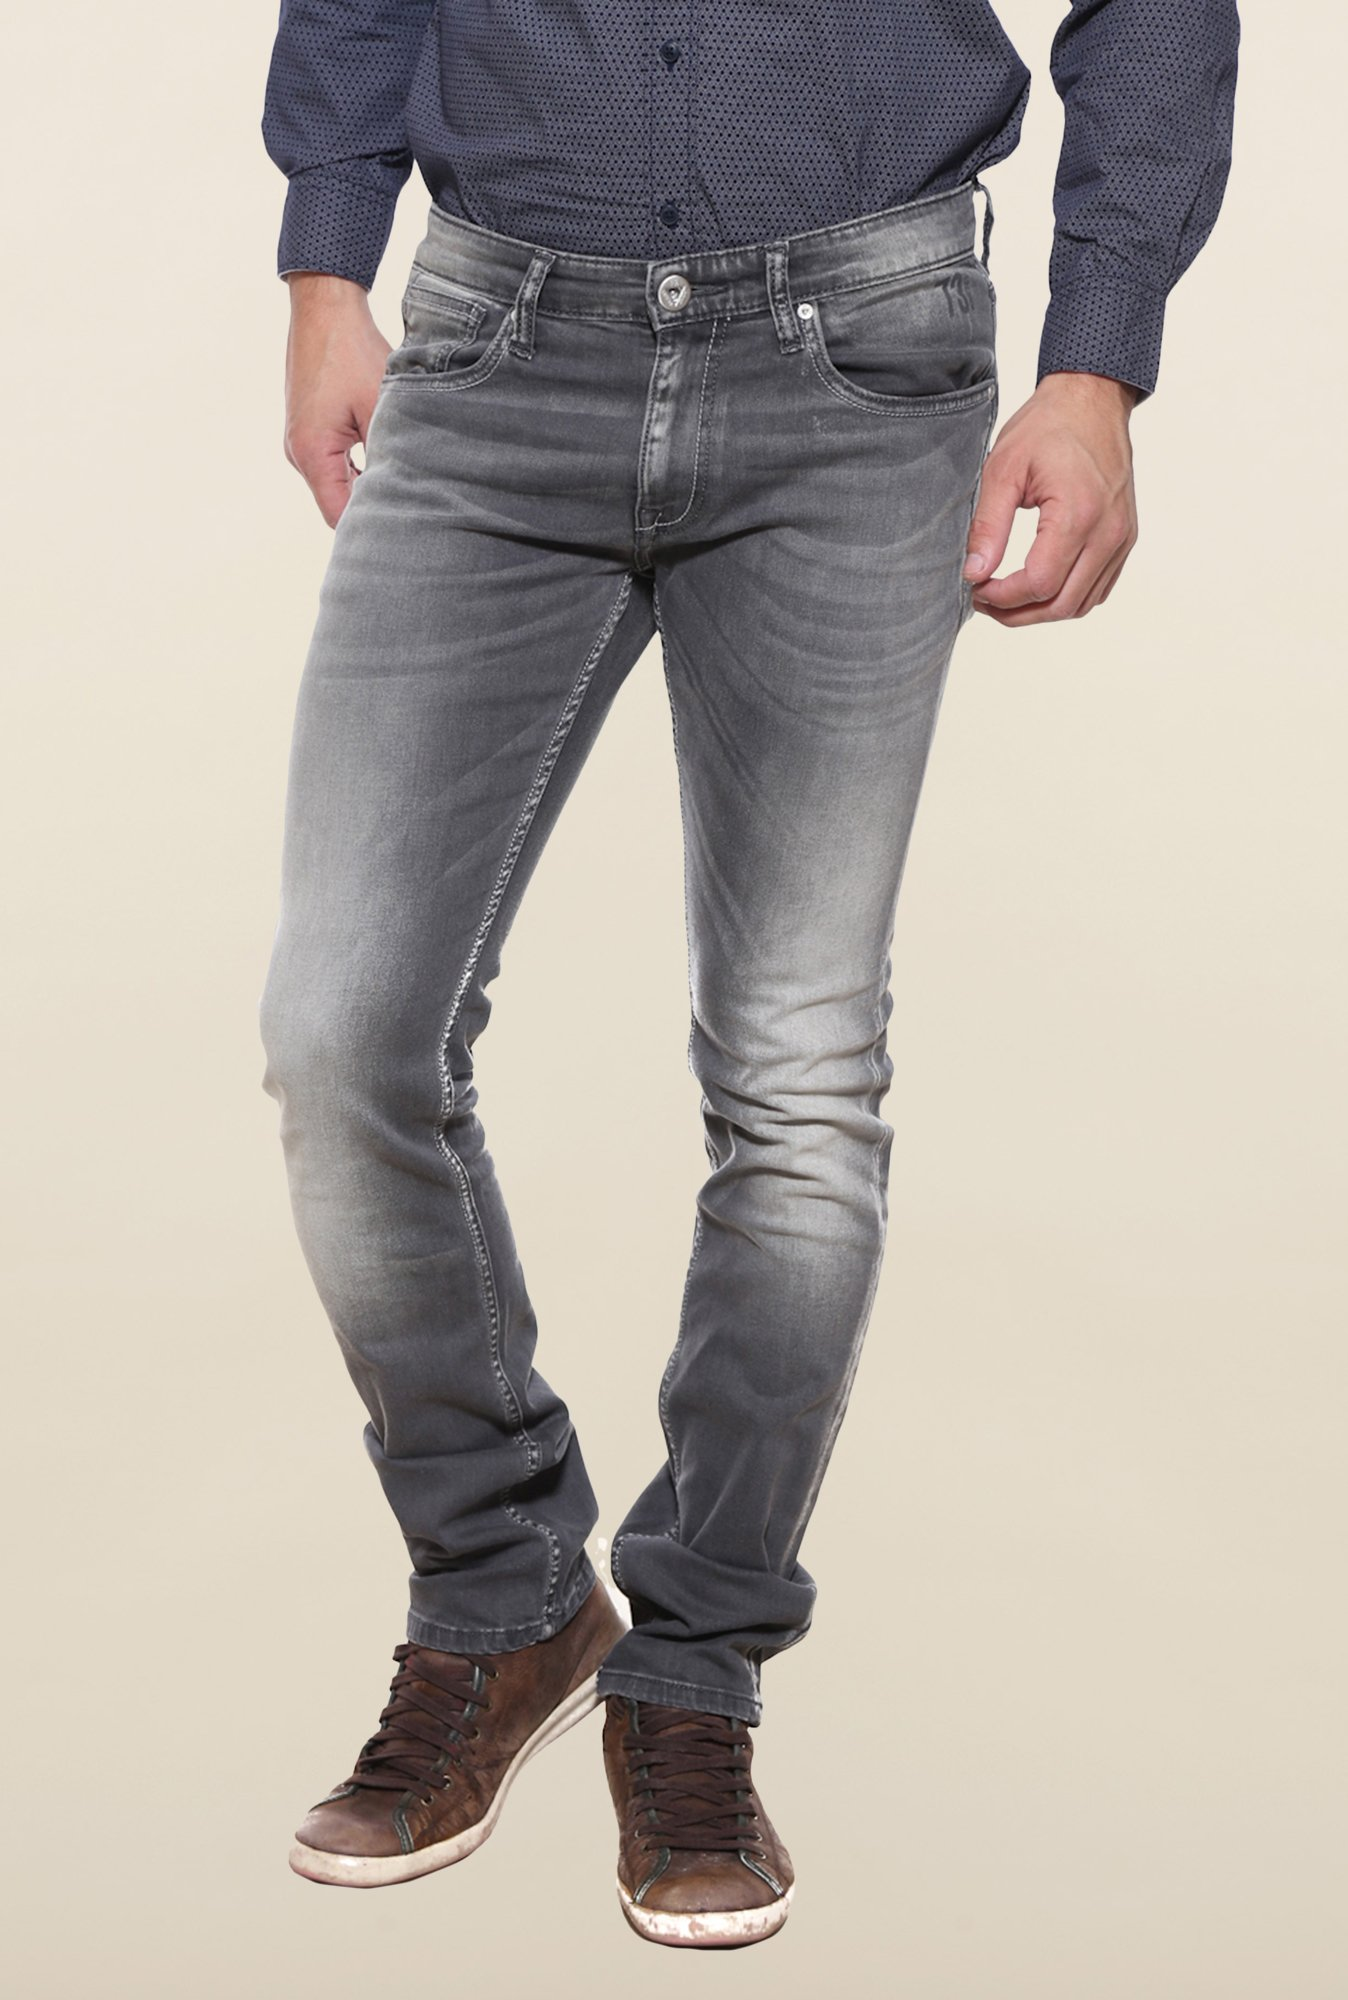 Pepe Jeans Grey Lightly Washed Solid Jeans